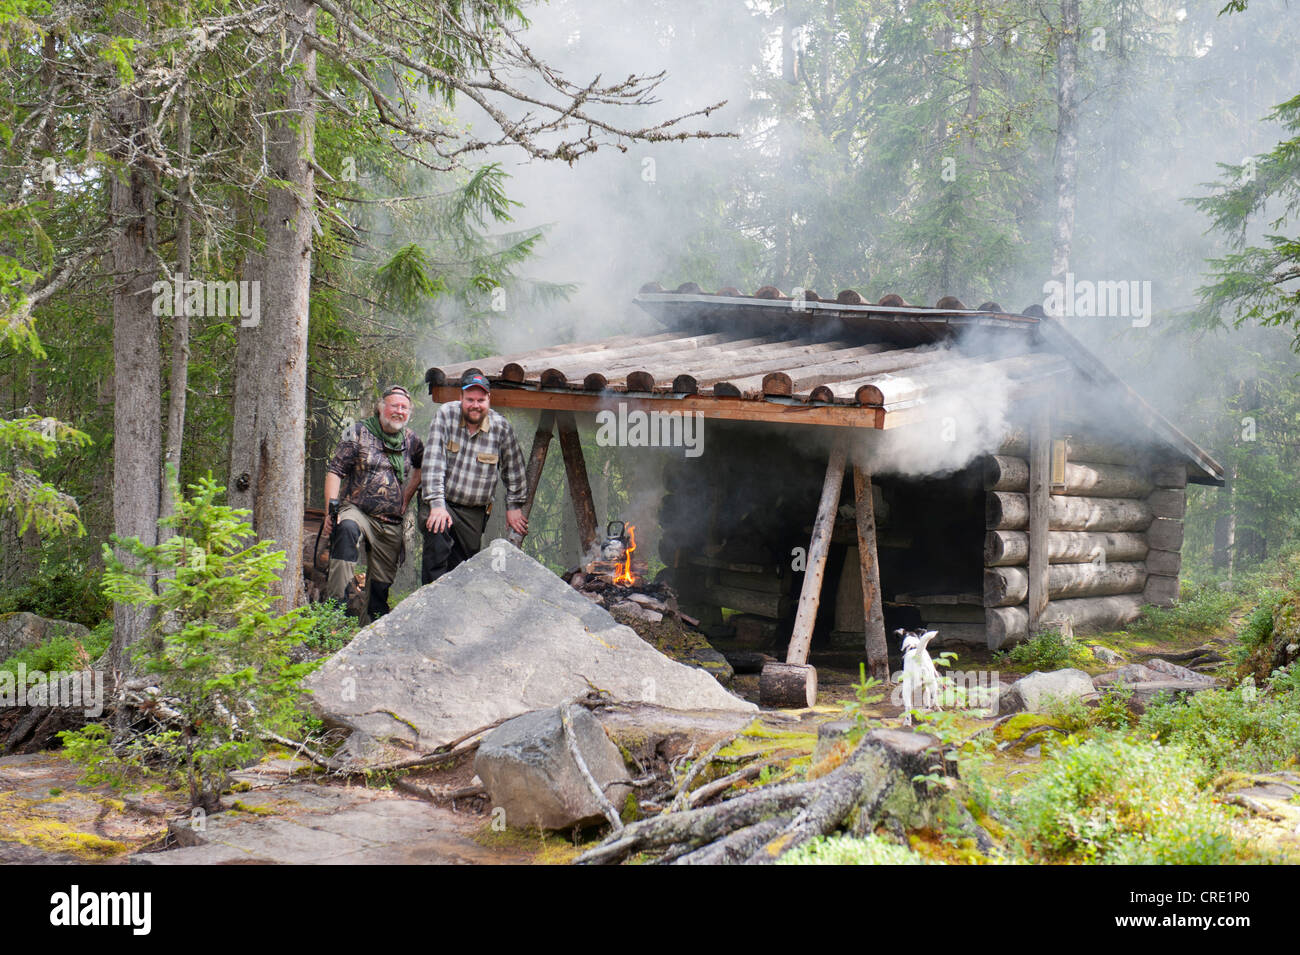 Swedish forestry workers and hunters making coffee on a fire in a cabin in the woods, near Fulufjaellets National - Stock Image